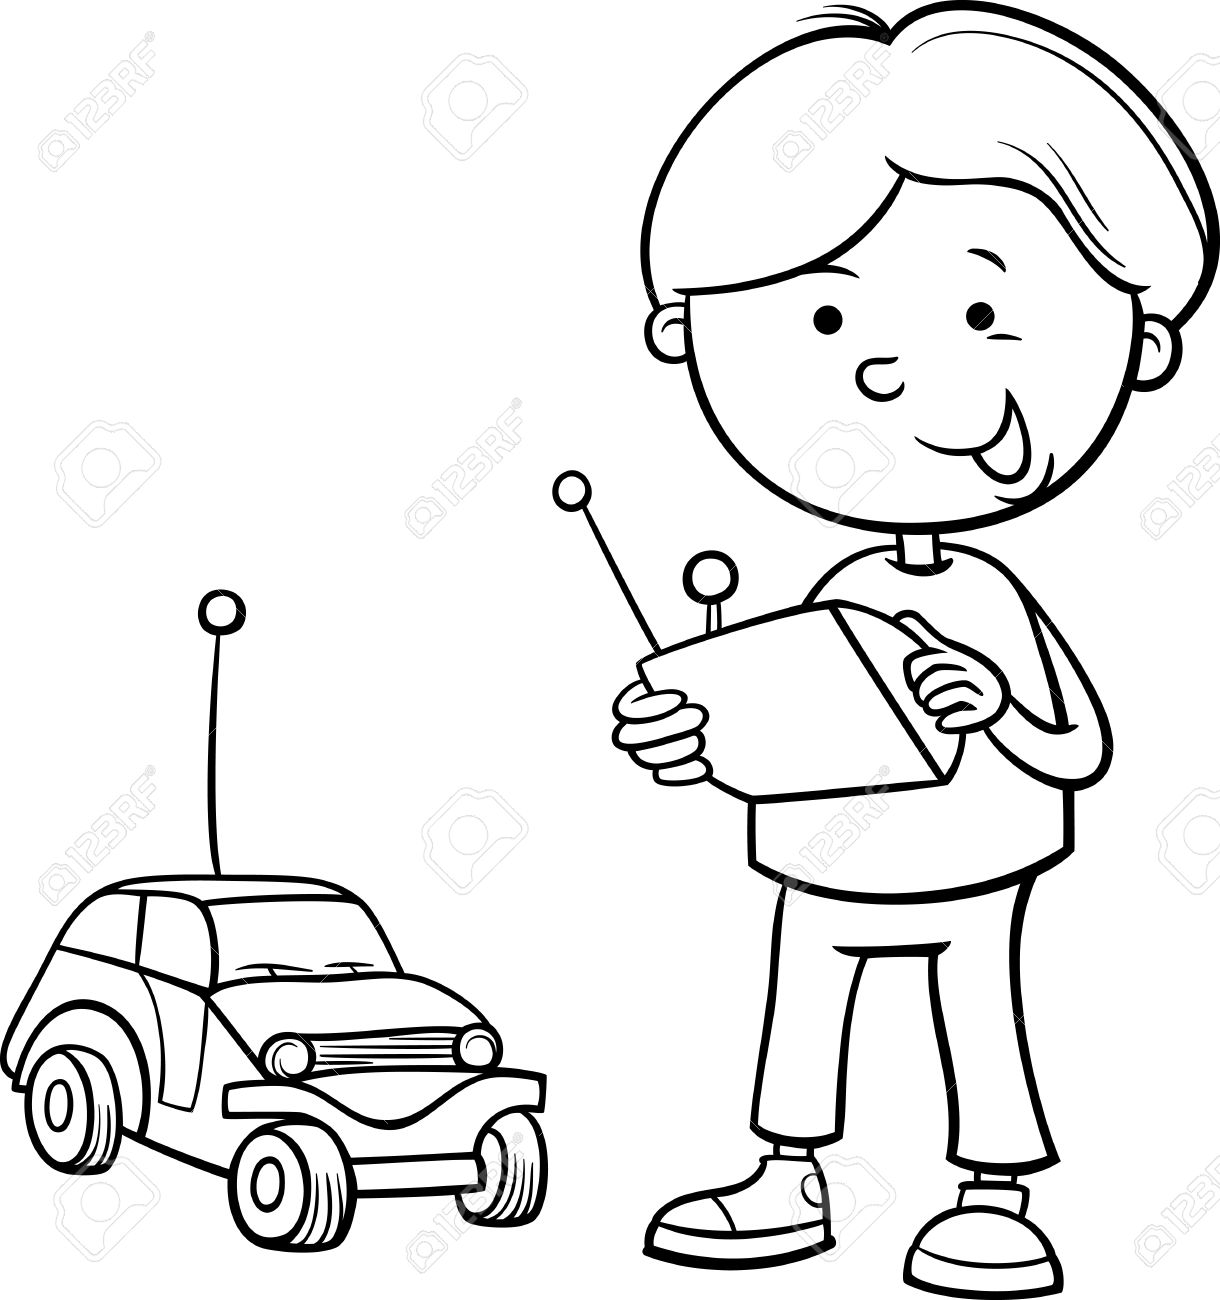 Black And White Cartoon Illustration Of Cute Boy With Remote Toy Car For Coloring Book Stock